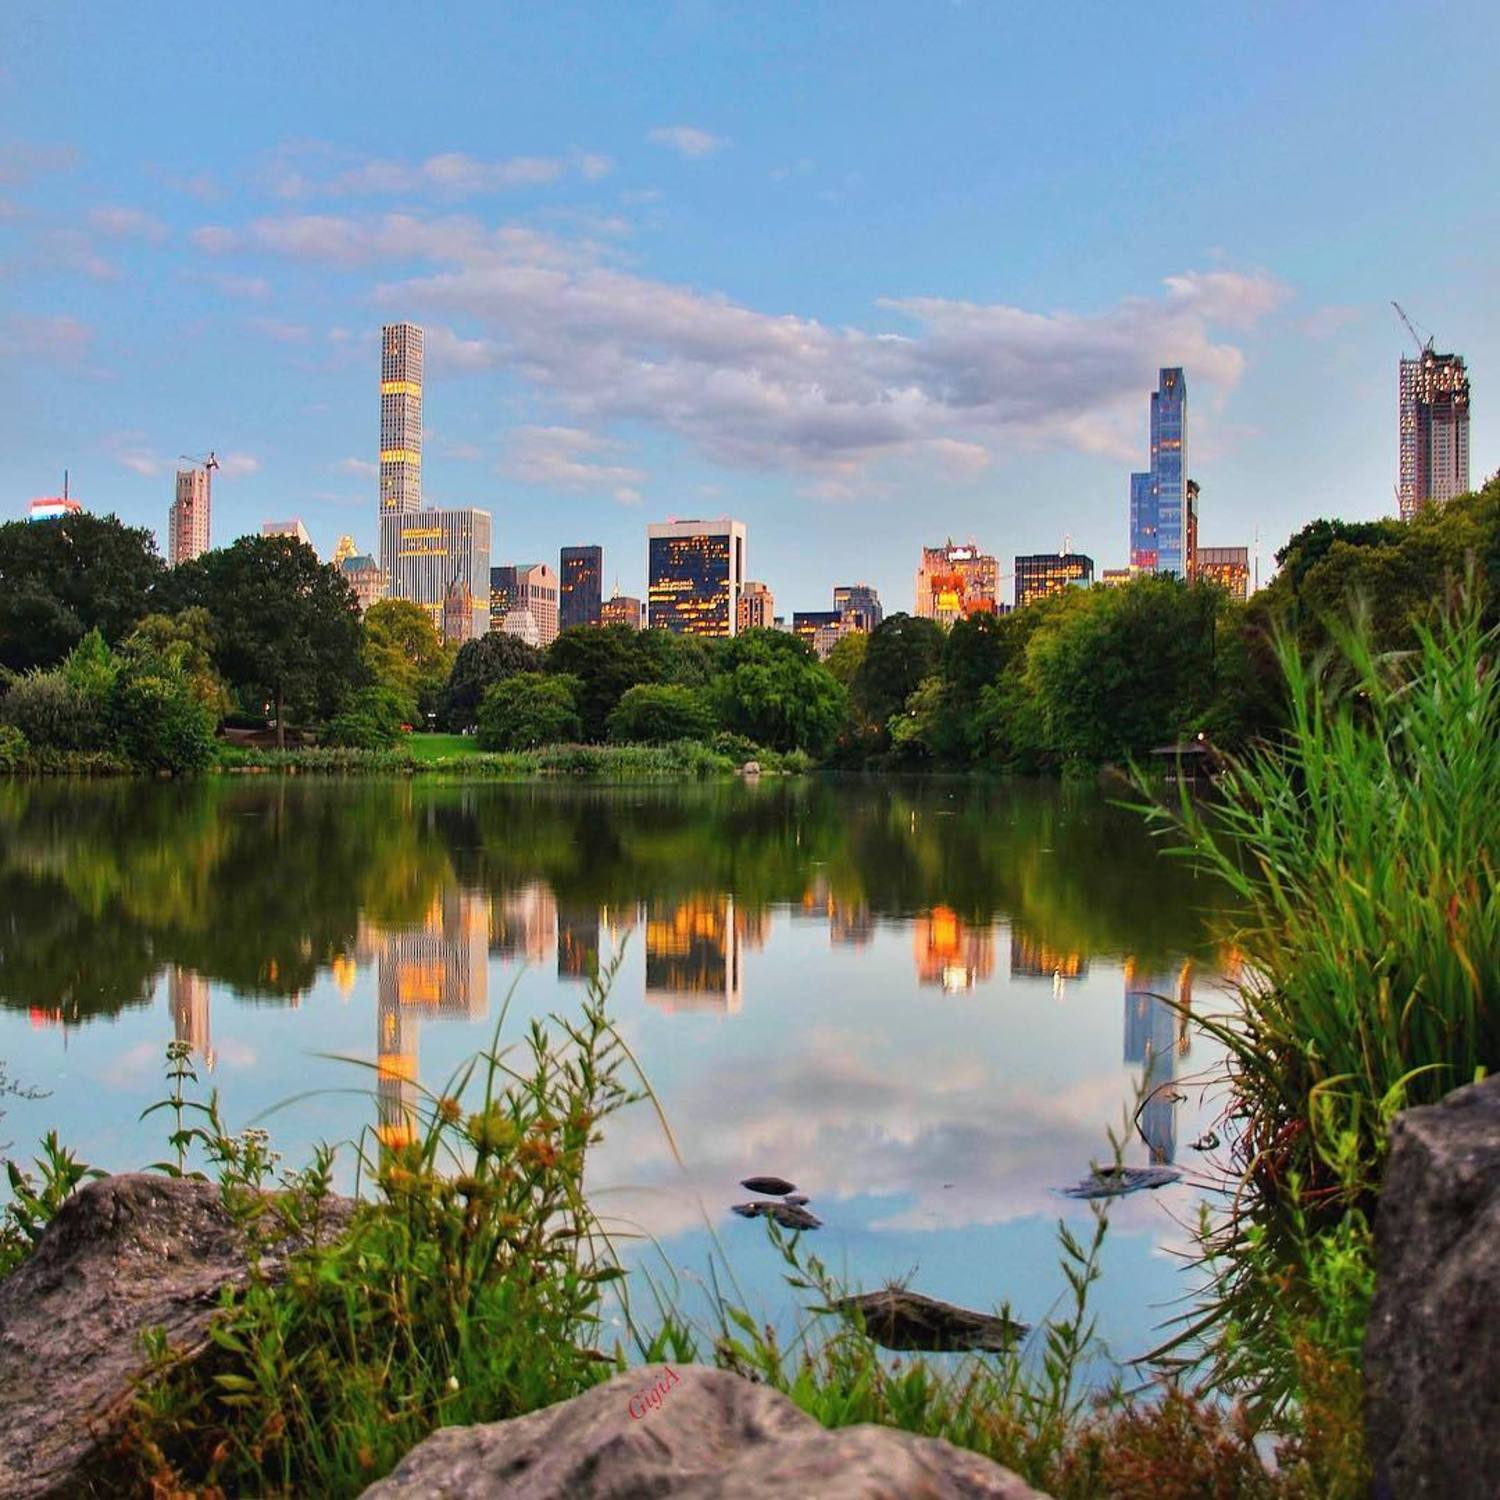 The Lake in Central Park, New York City